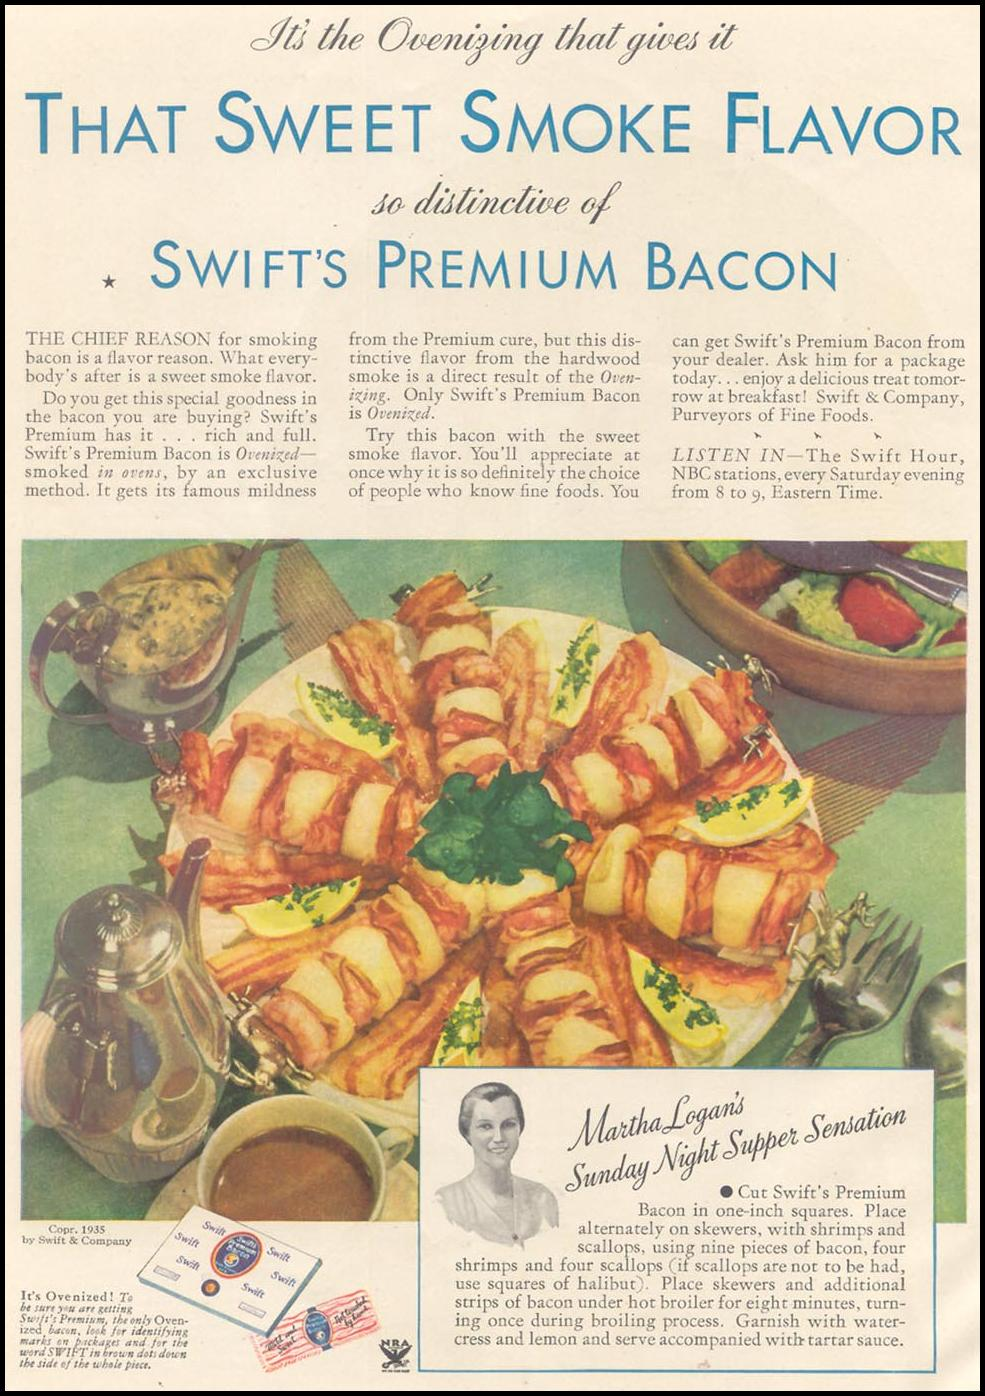 SWIFT'S PREMIUM BACON GOOD HOUSEKEEPING 03/01/1935